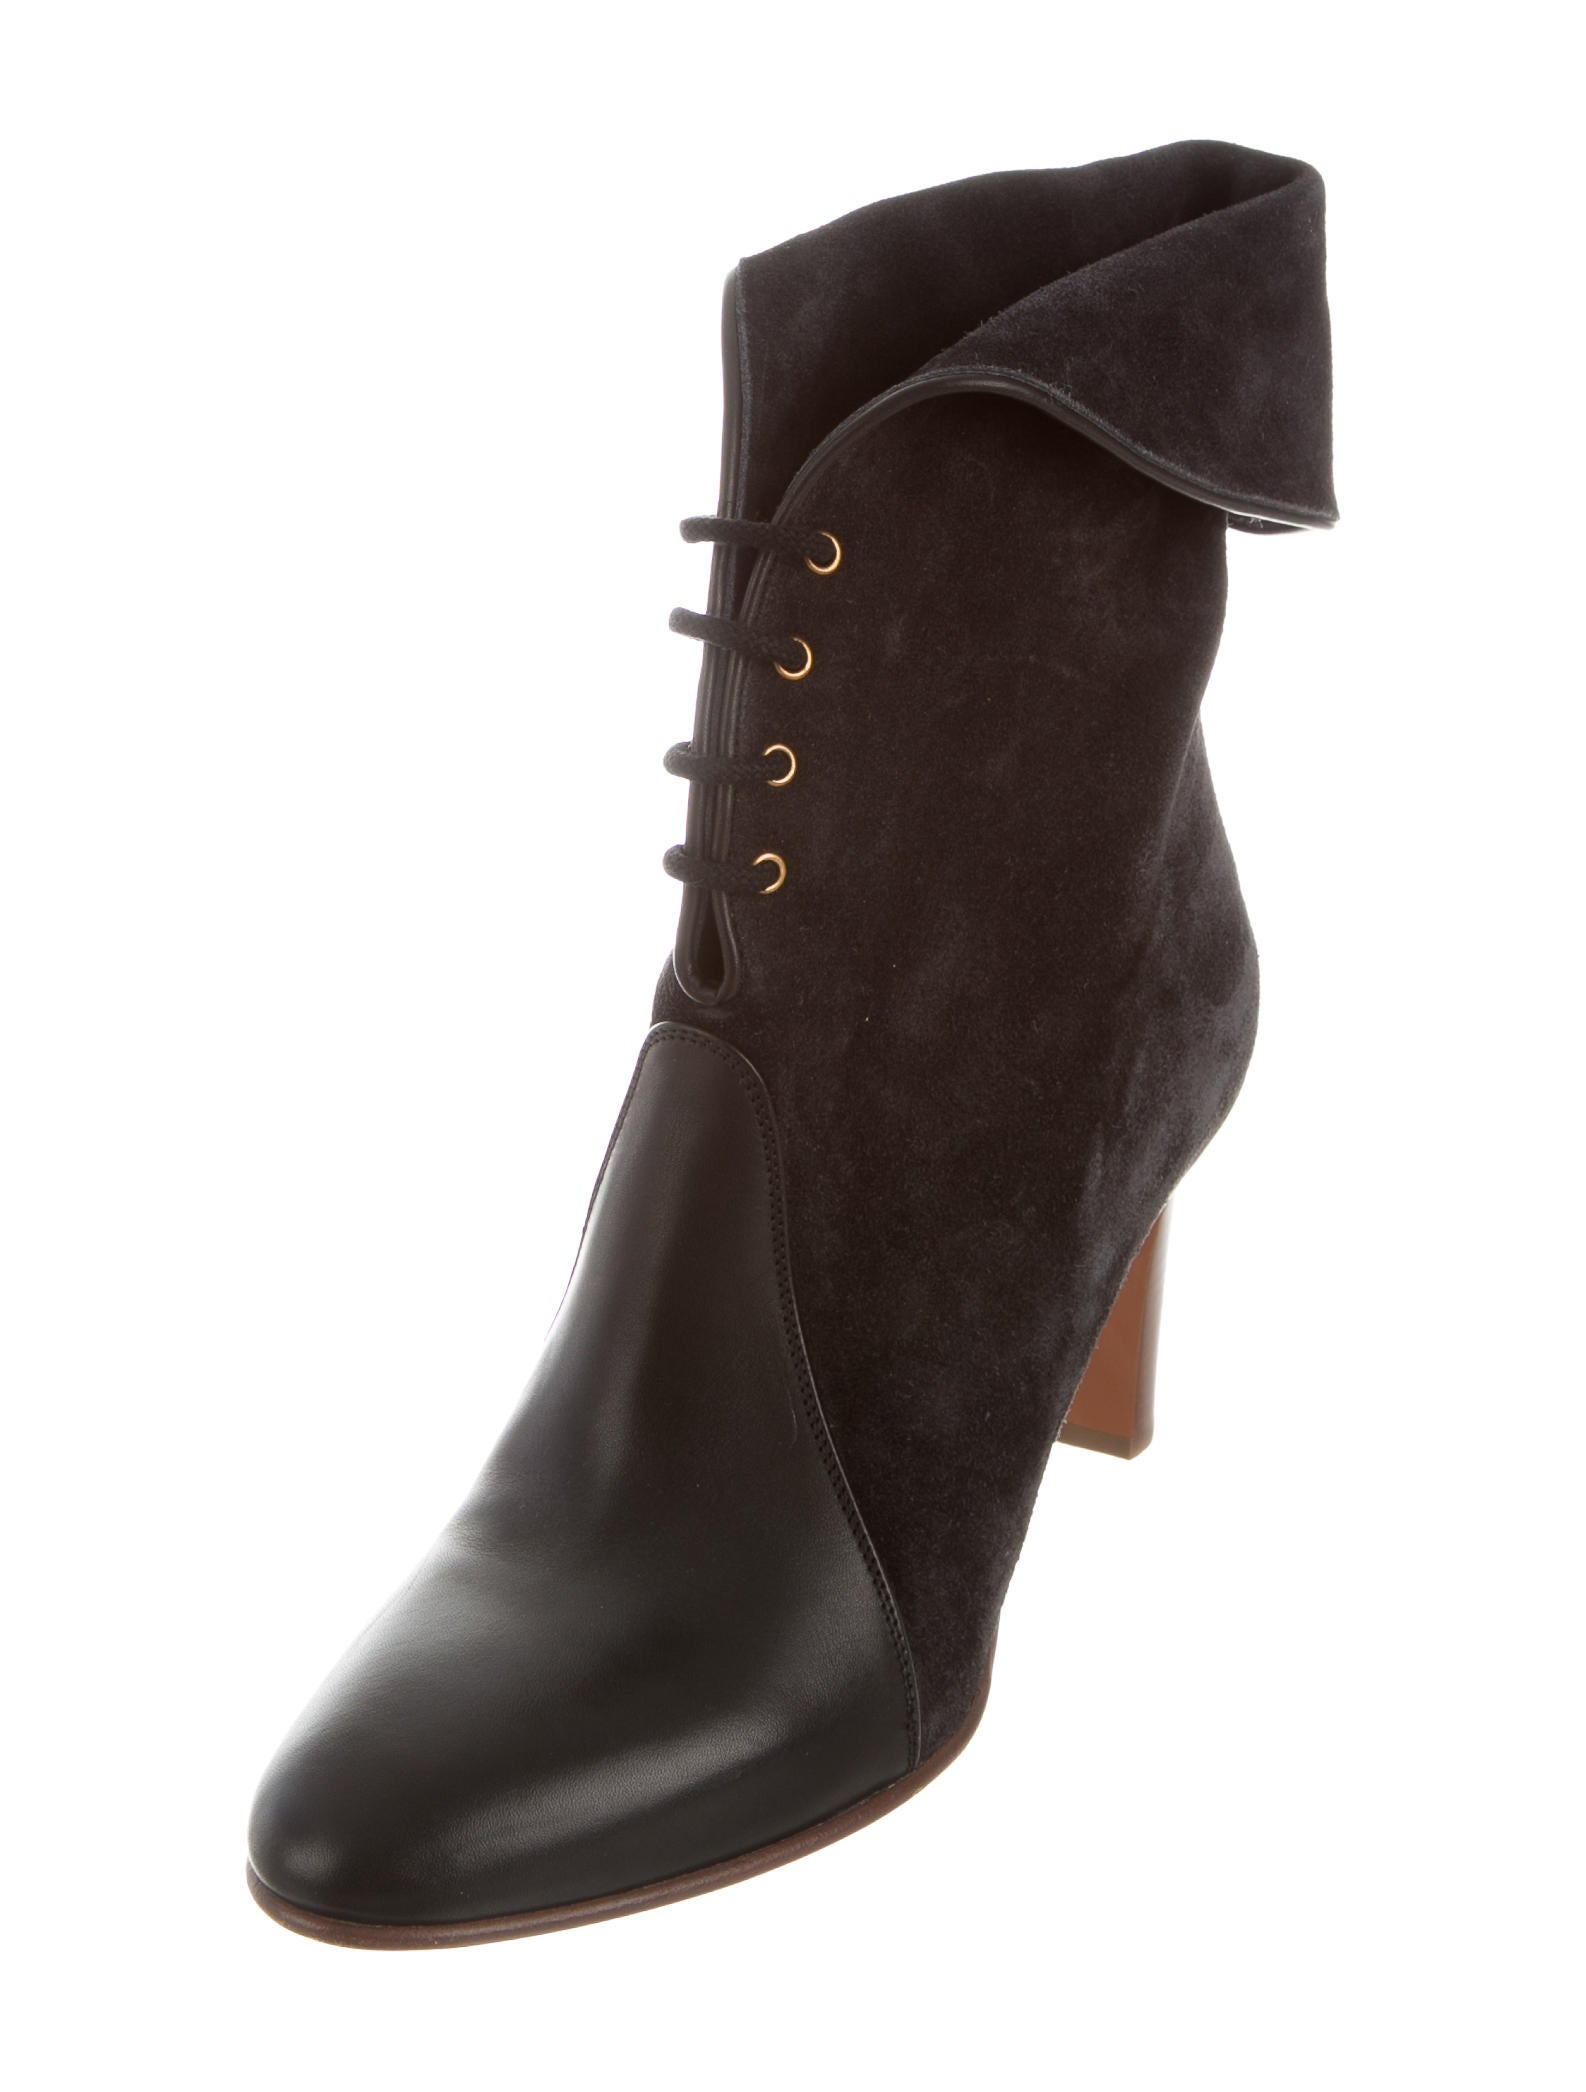 chlo 233 suede leather trimmed boots shoes chl61372 the